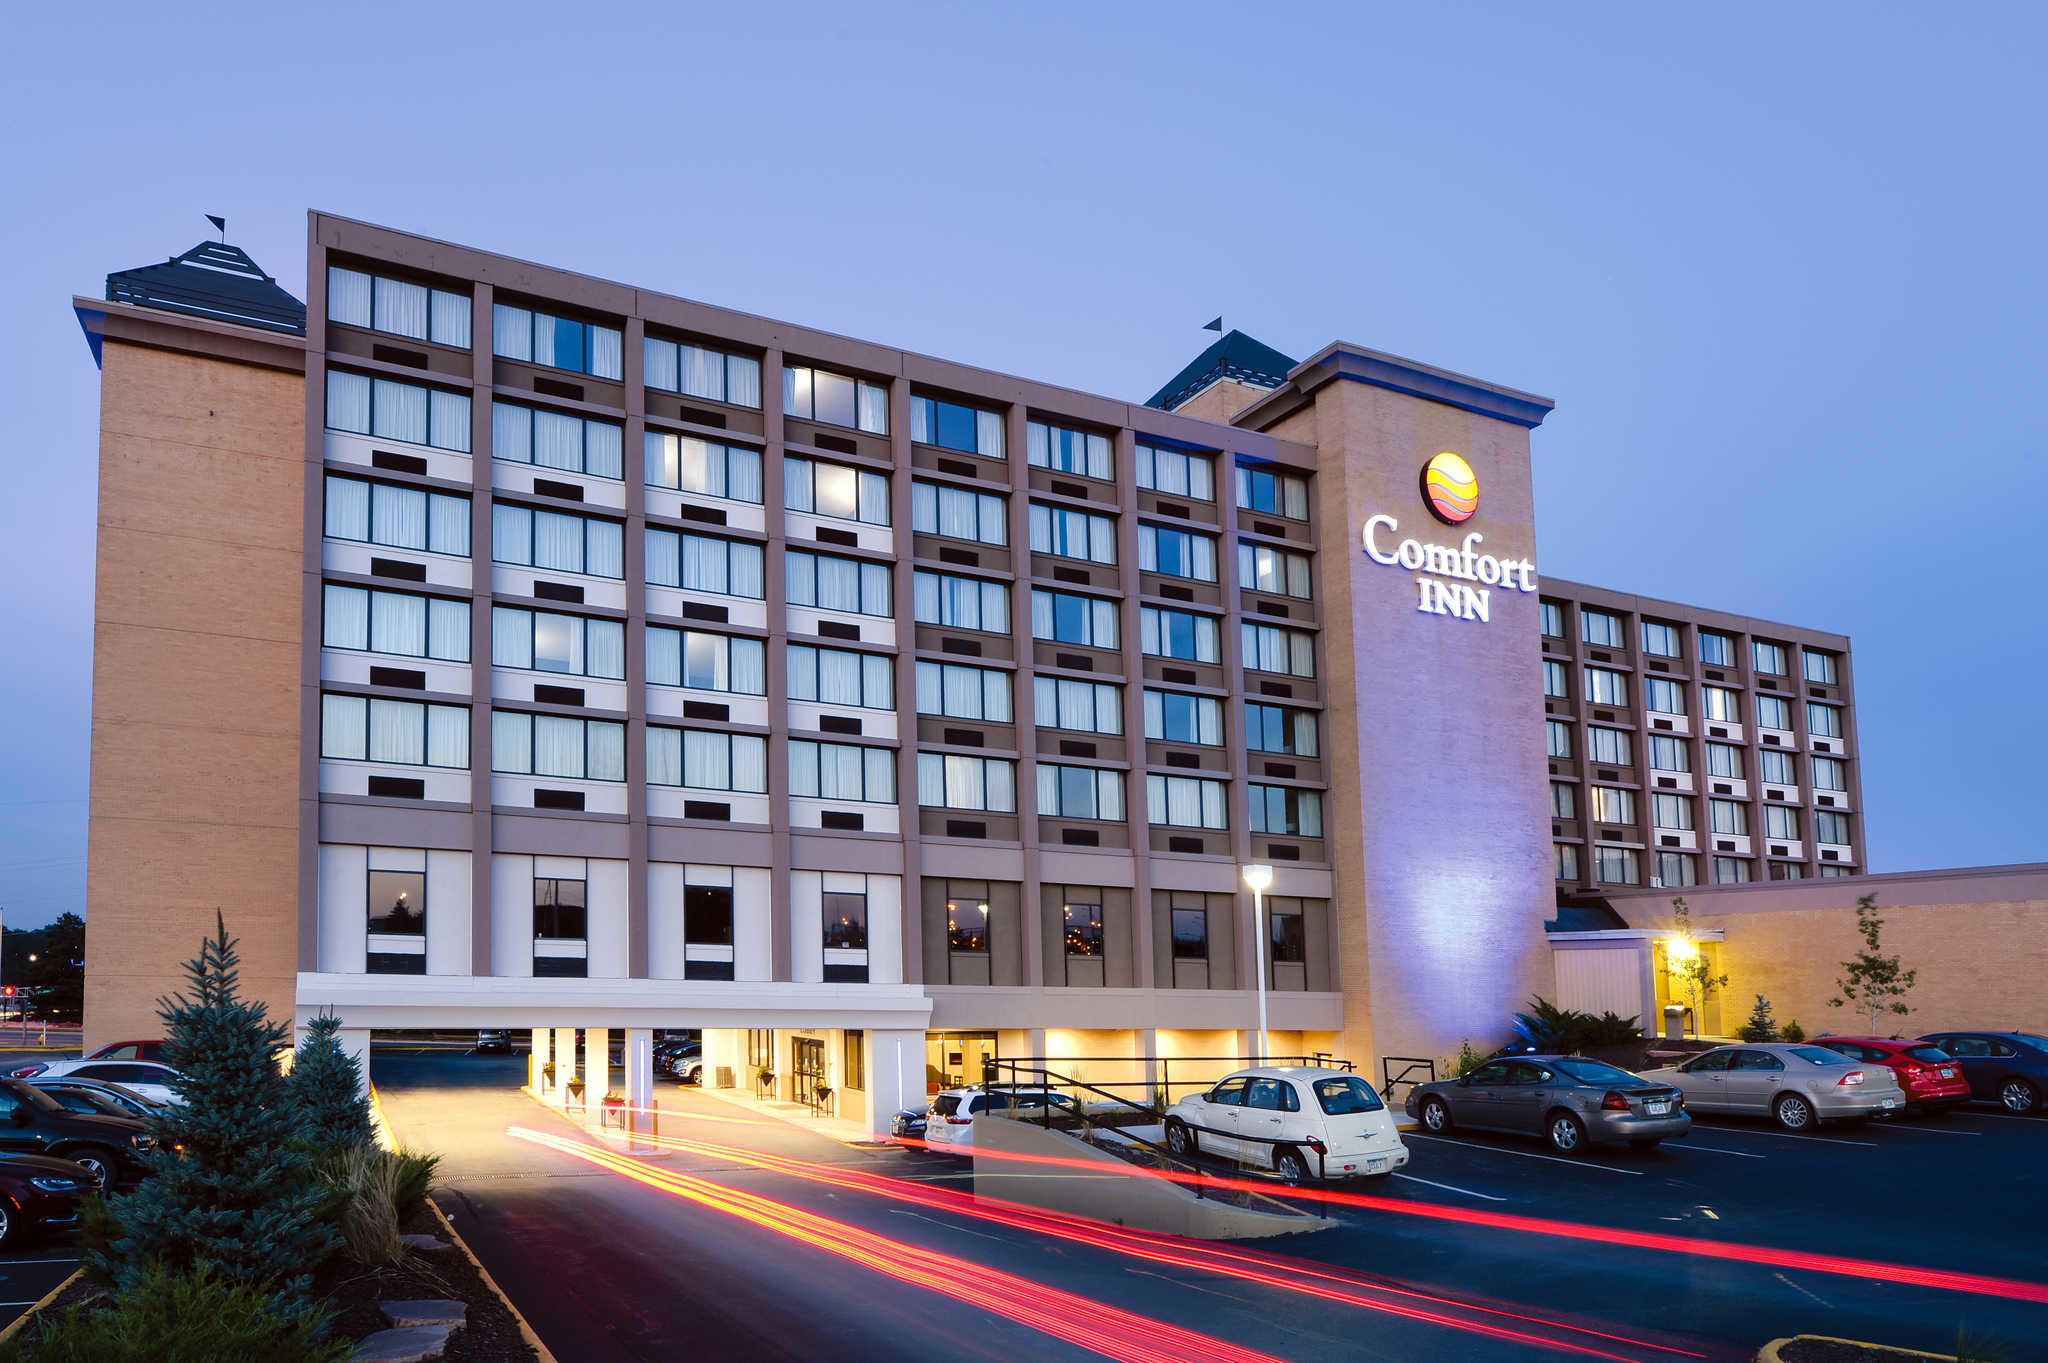 Hotel in IA Des Moines 50309 Comfort Inn & Suites Event Center 929 3rd Street  (515)282-5251